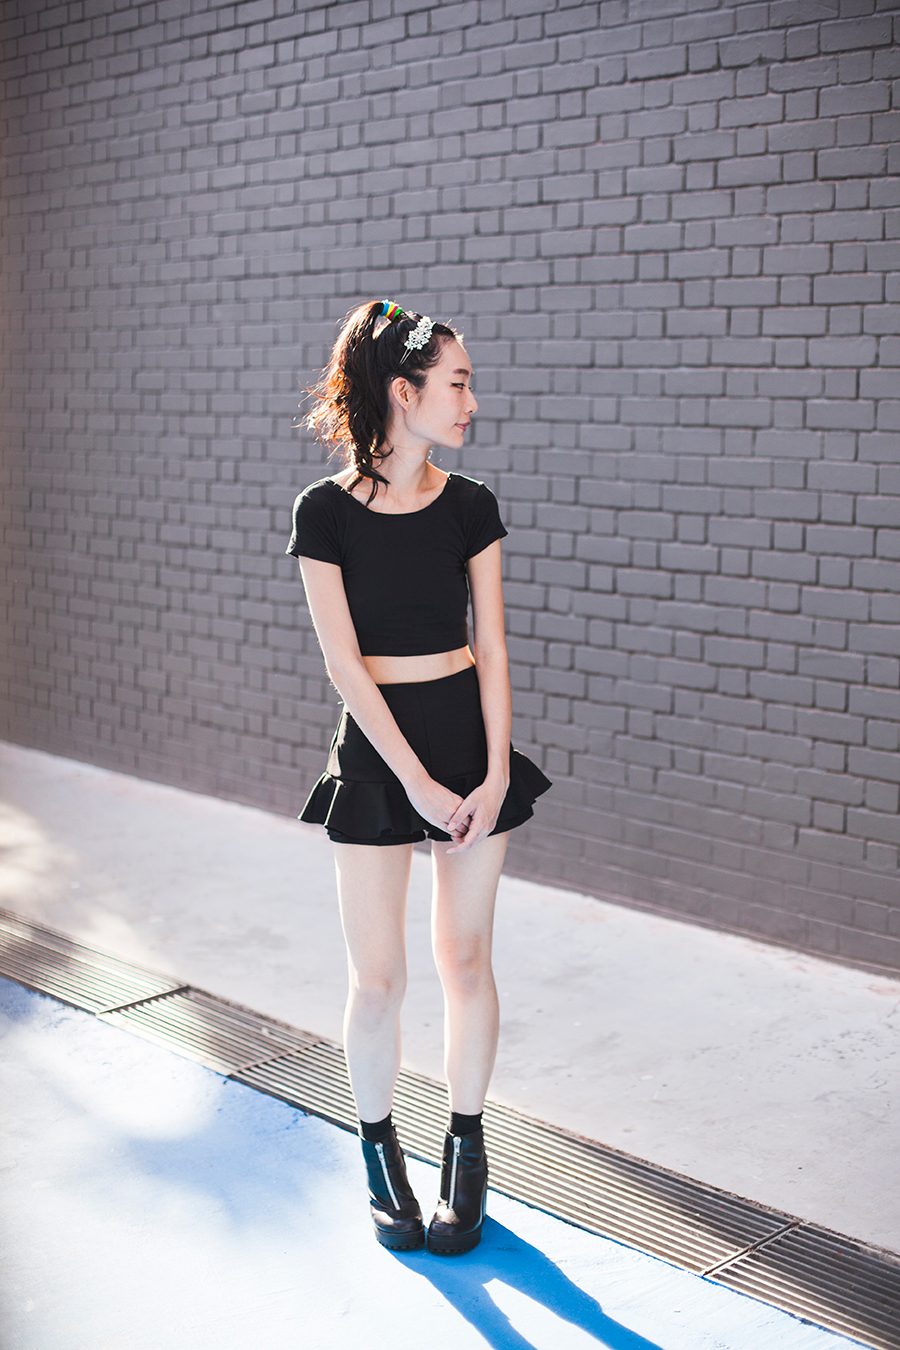 Irresistible Me Isis Headband outfit: DressLink black crop top, black culottes from Bangkok, black crew socks from Taobao, Rubi black platform boots via Zalora, multicolor hair ties from Luxola.